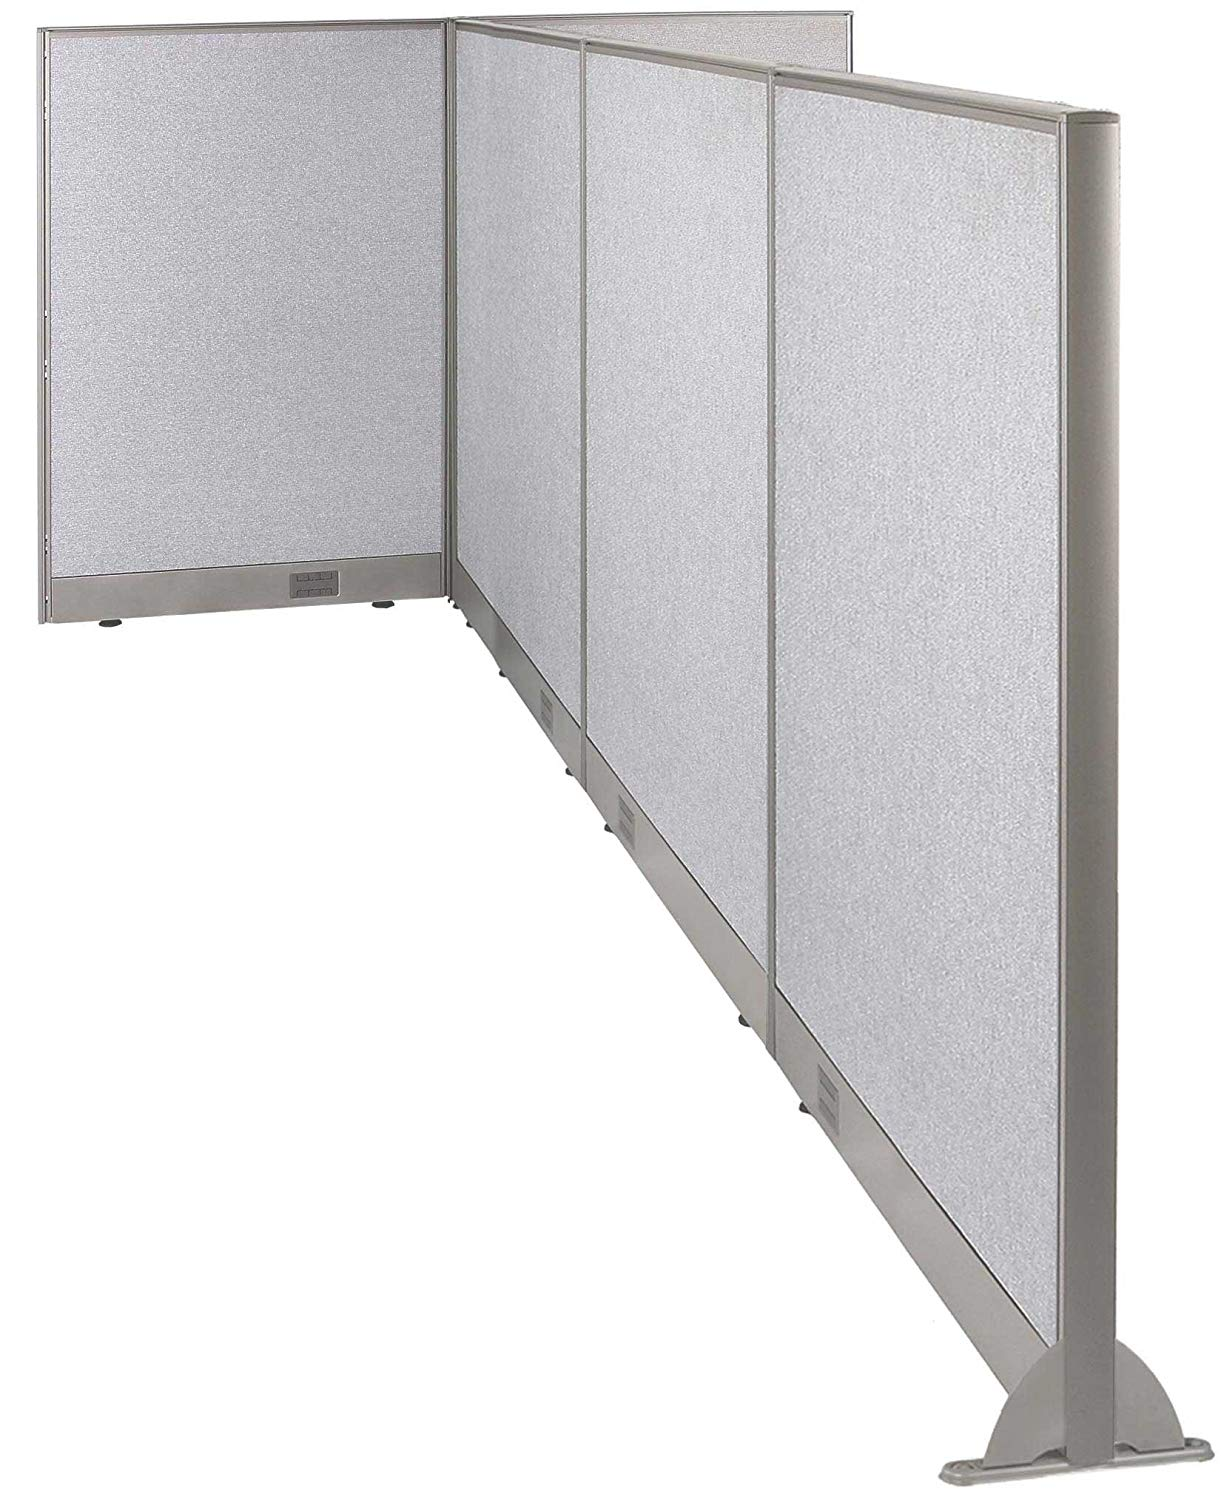 GOF T-Shaped Freestanding Partition 120d x 60w x 48h/ Office, Room Divider … (120d x 60w x 48h)